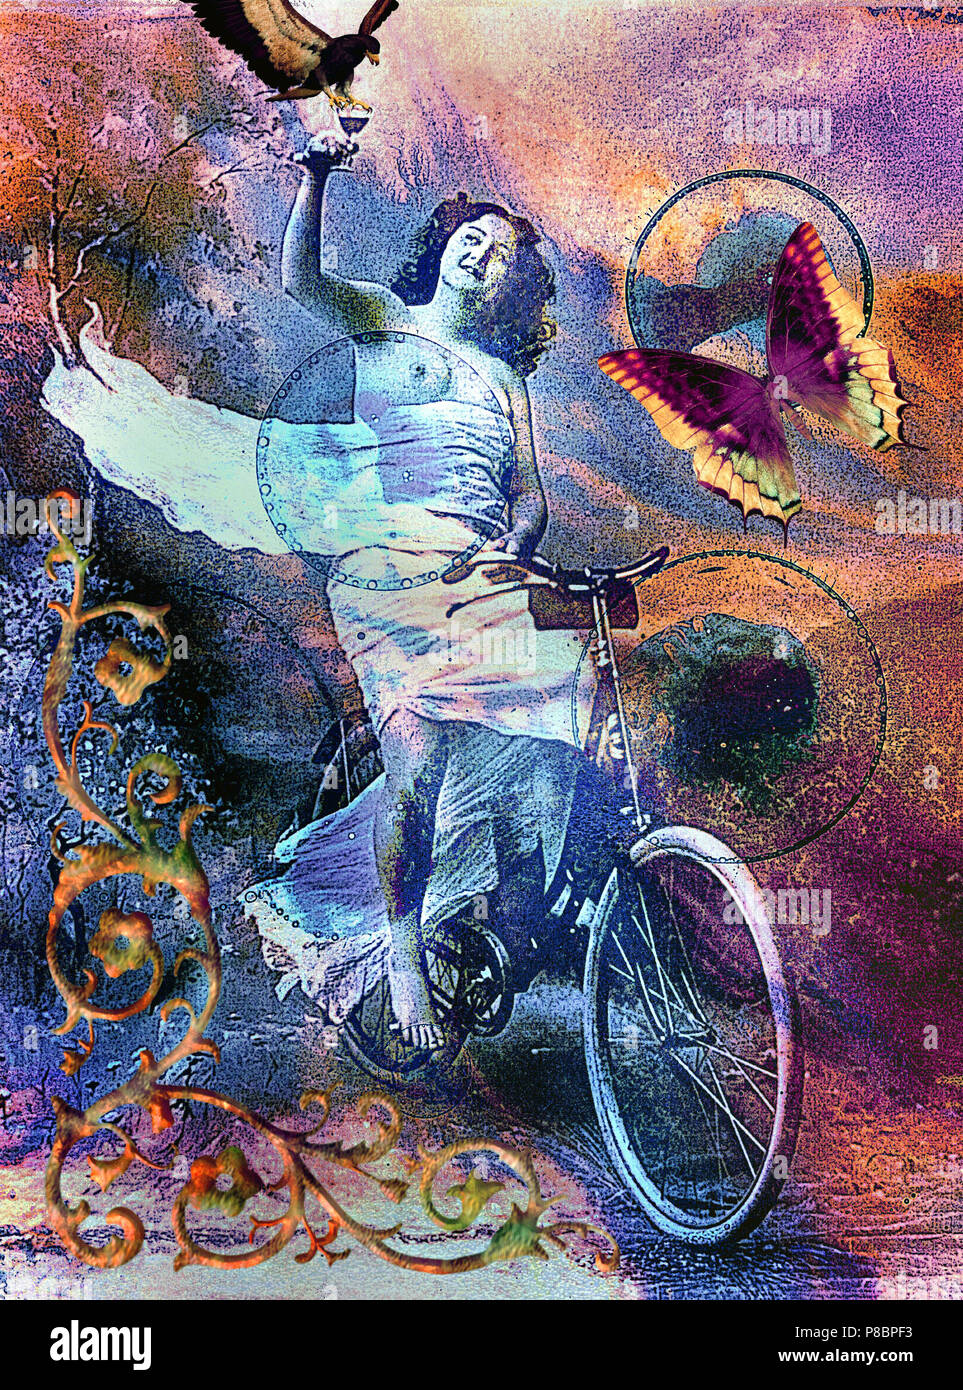 A celestial,steam punk,vintage semi nude girl cyclist holding up a glass of wine, appears to be quite happy in life.Elements of space, universe in it. Stock Photo